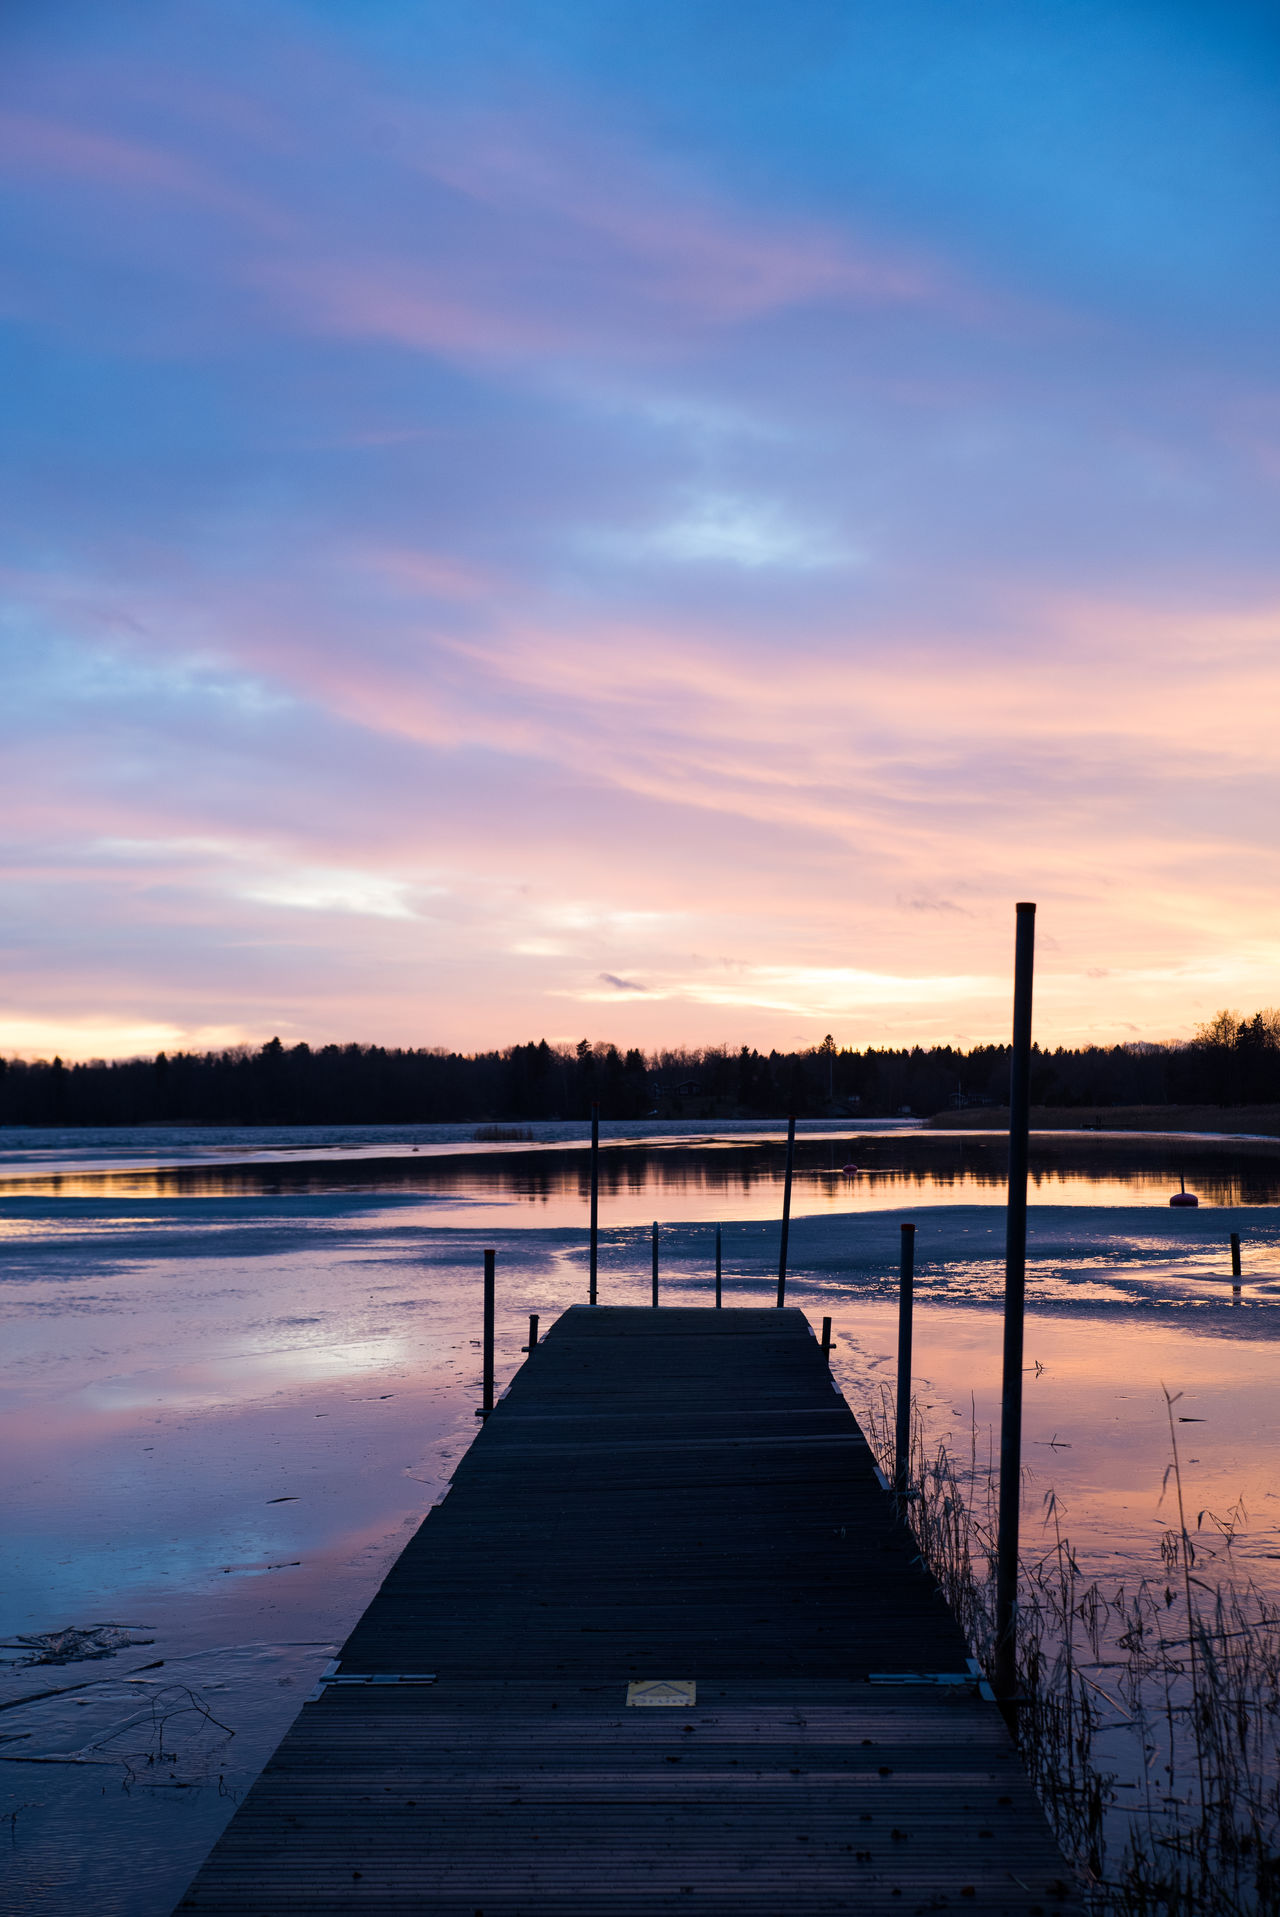 The sun has just set behind the trees and the sky is filled with orange and purple tones. Beauty In Nature Cloud - Sky Day Jetty Lake Nature No People Outdoors Scenics Sky Sunset Tranquil Scene Tranquility Tree Water